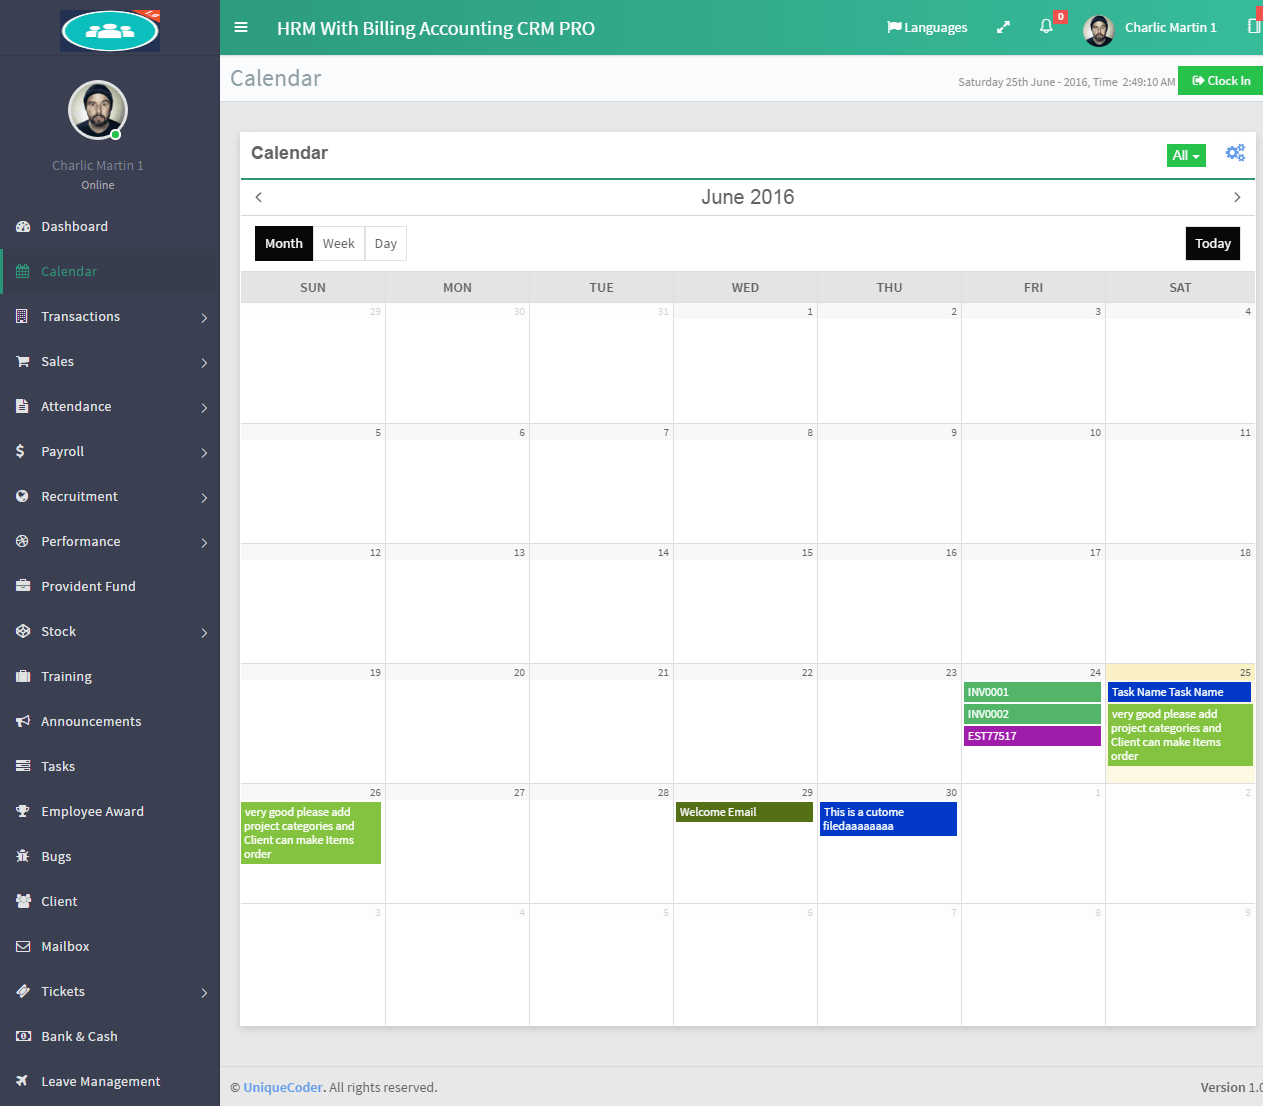 Generate Calendar Zen Zen Master Wikipedia Hrm With Billing And Accounting Software By Uniquecoder